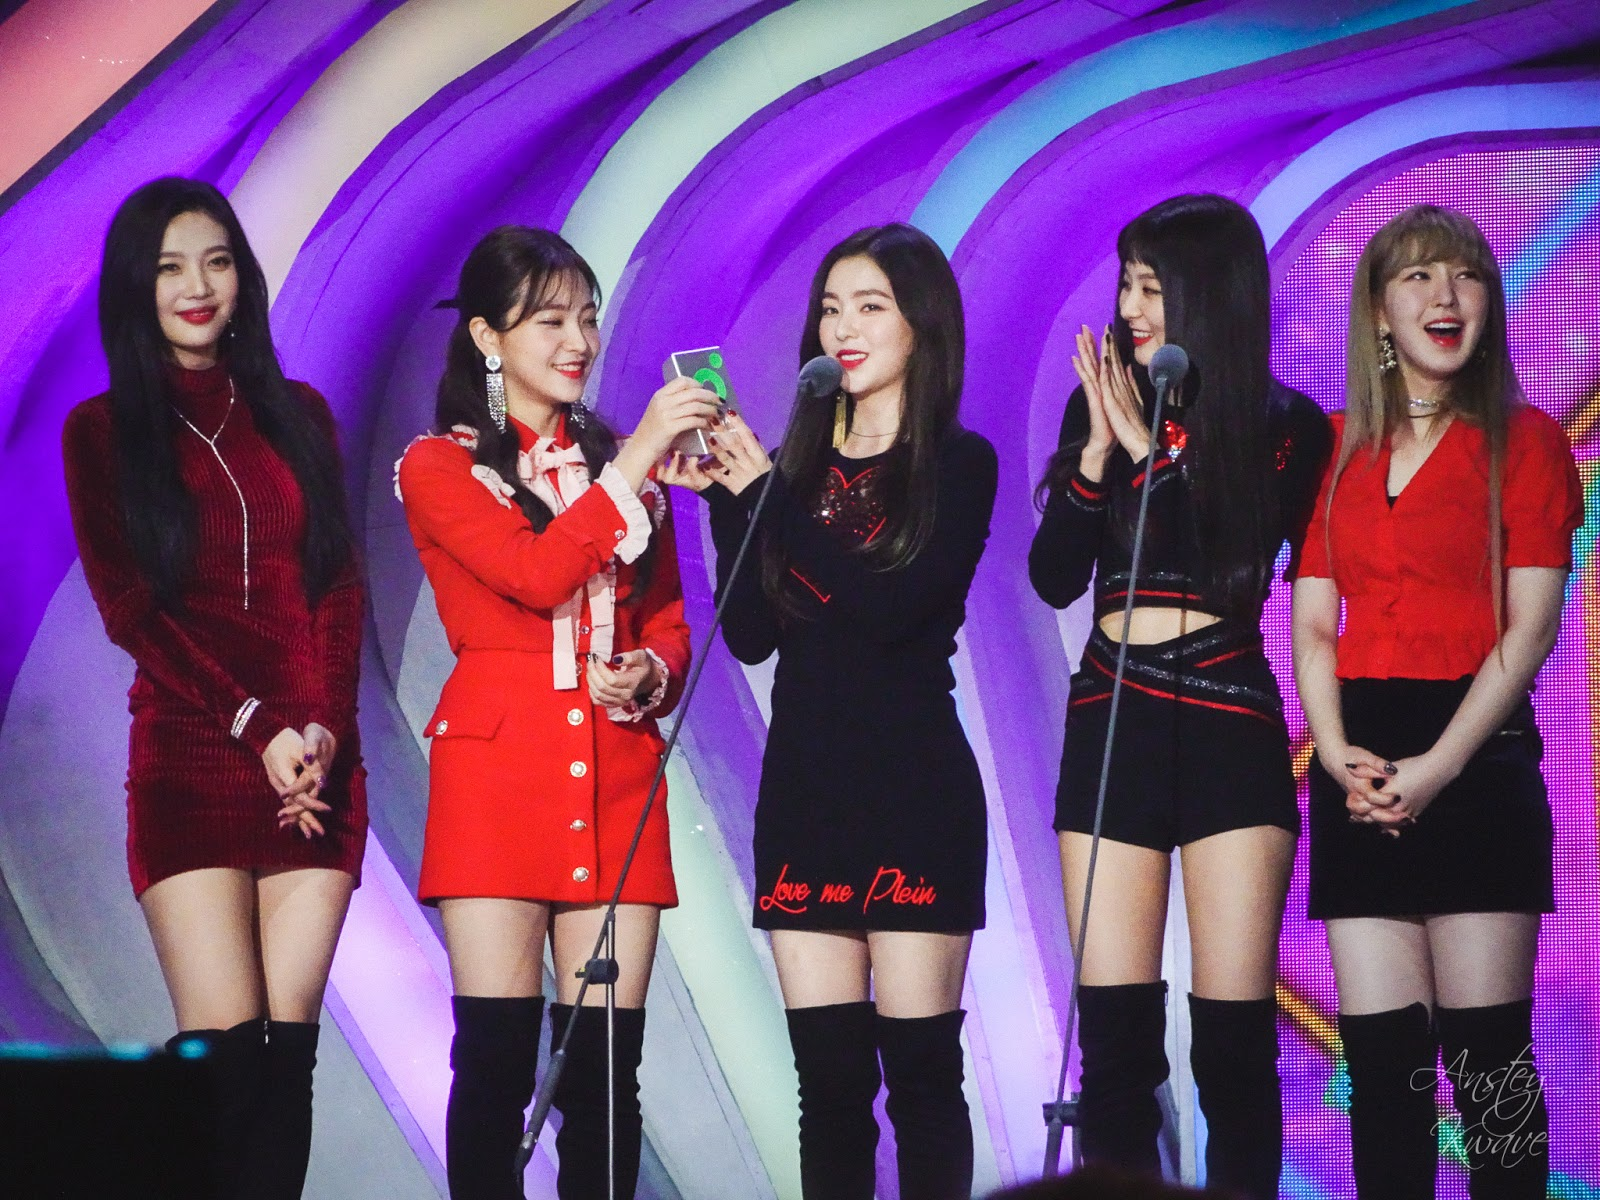 Red Velvet famous Korean k-pop girl group receiving award on stage at Melon Music Awards (MMA) 2017 in Seoul, South Korea